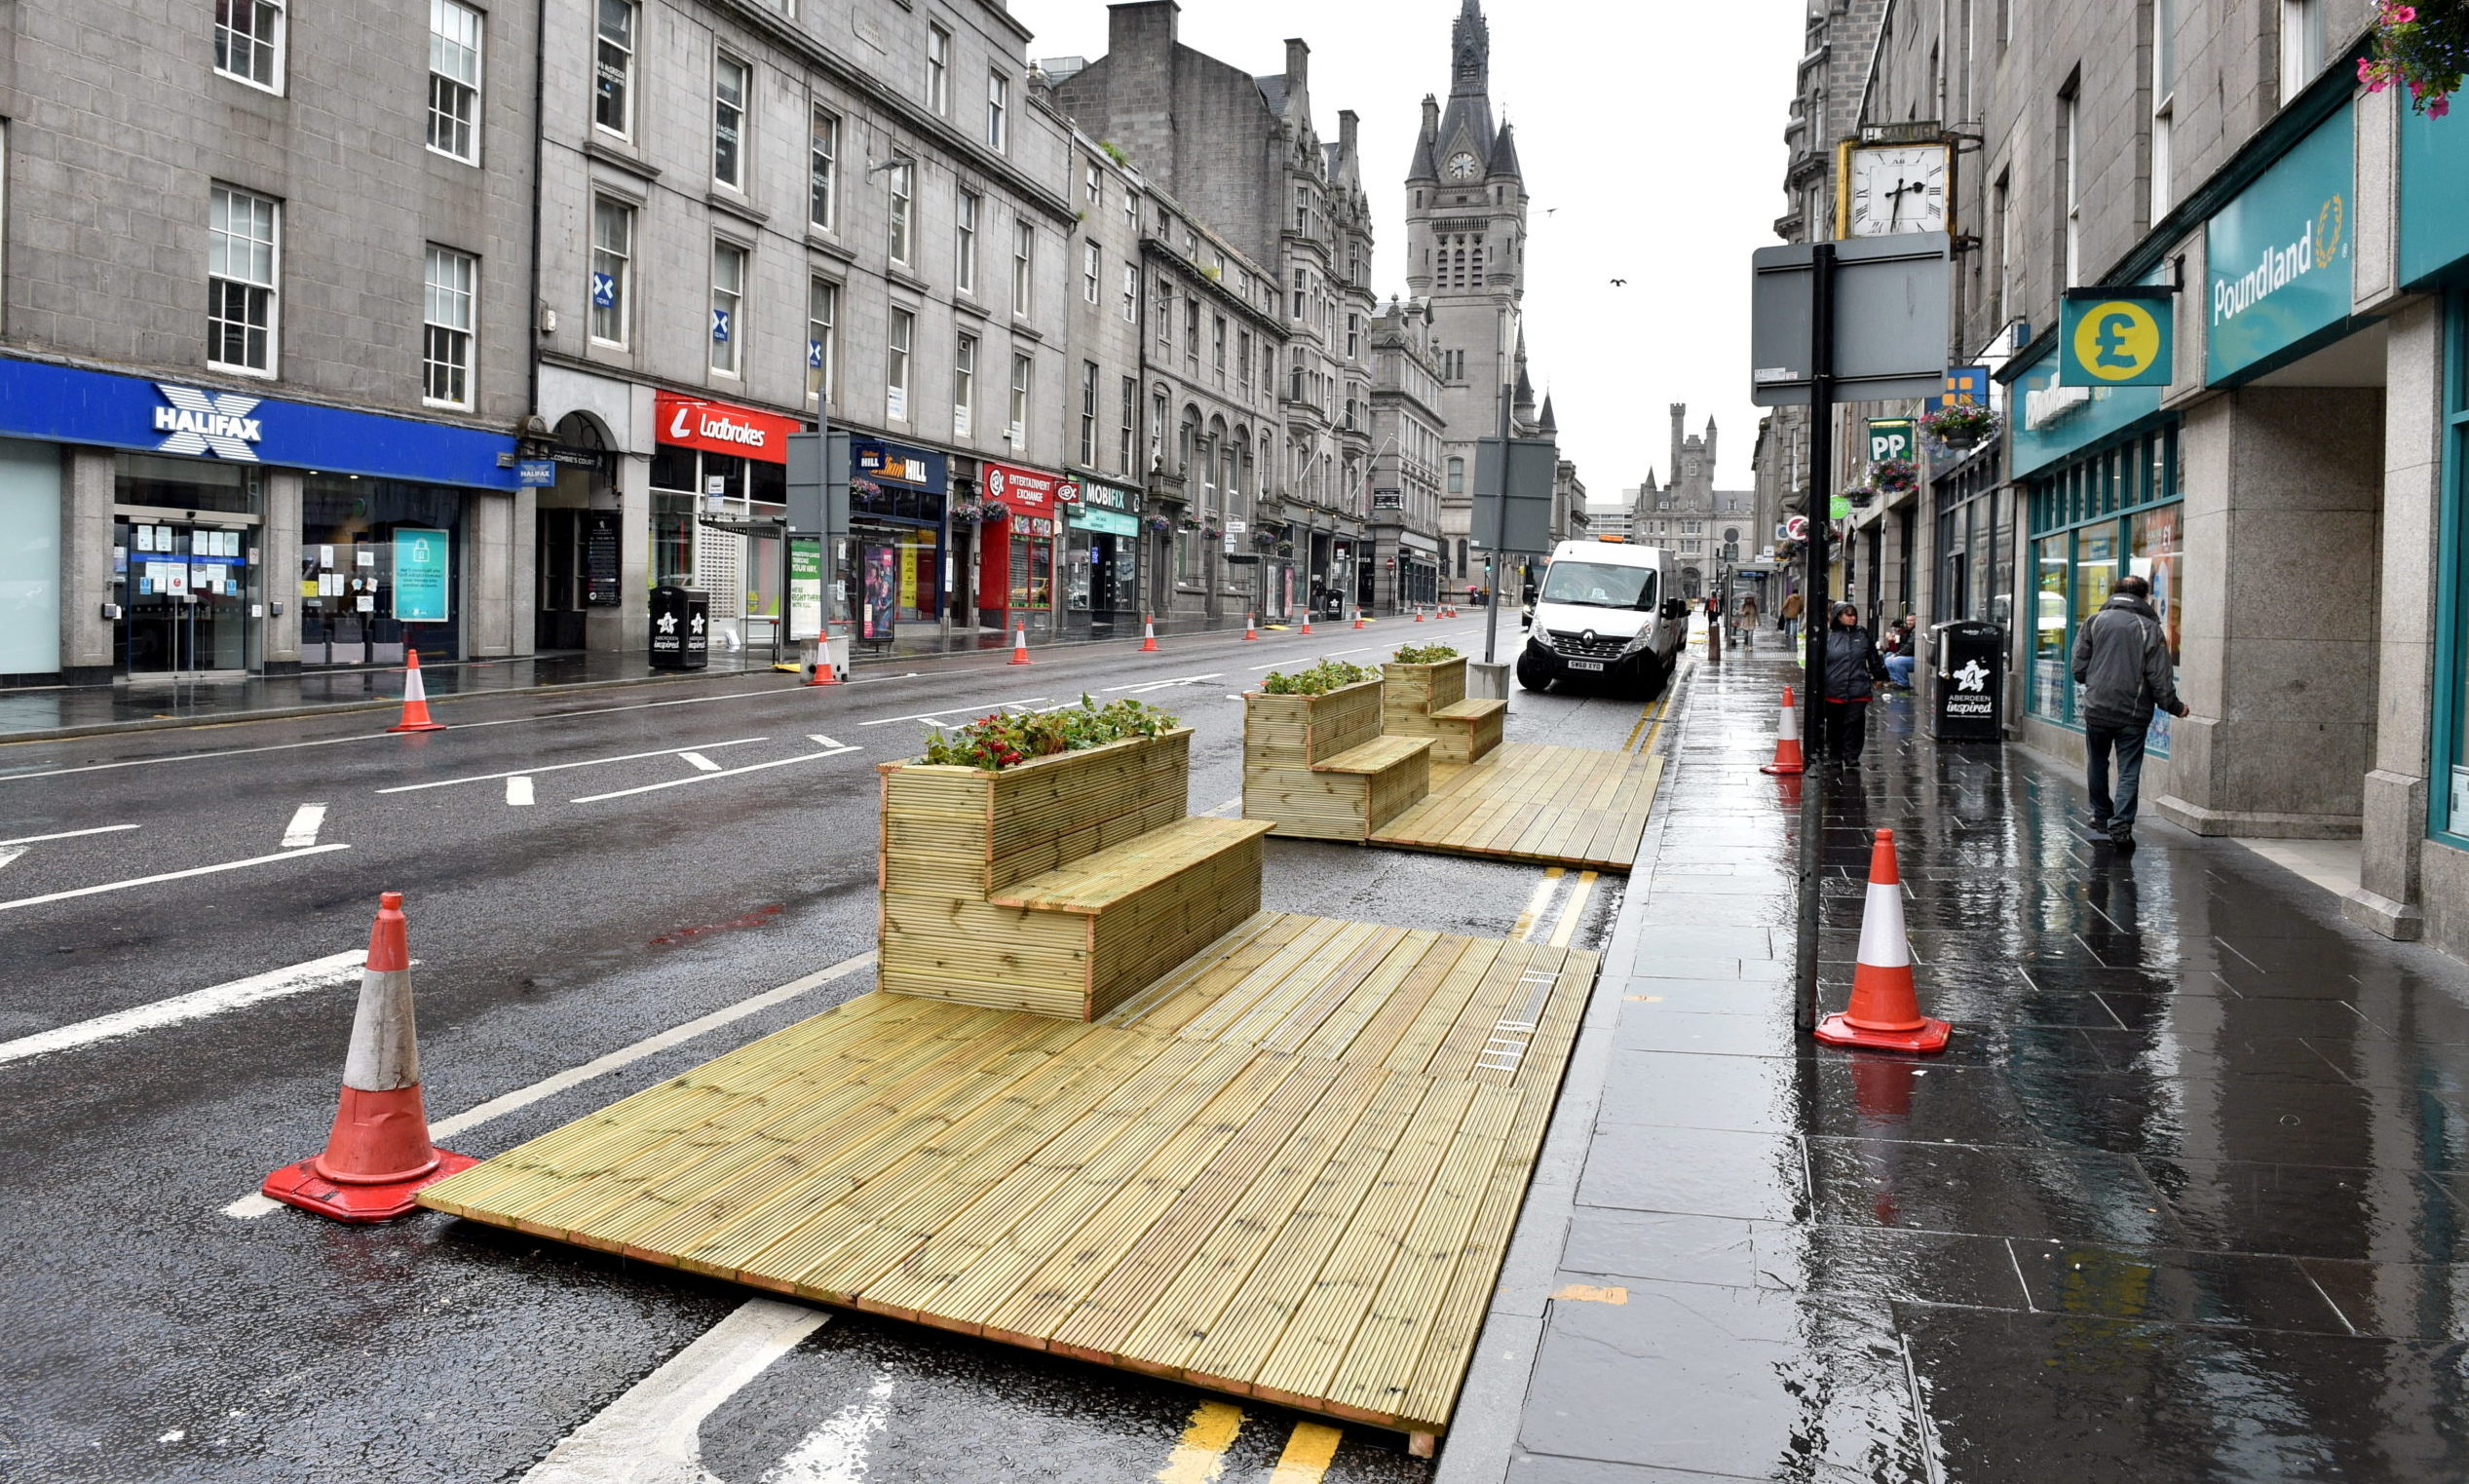 The first of 64 pavement extensions are installed in Aberdeen.